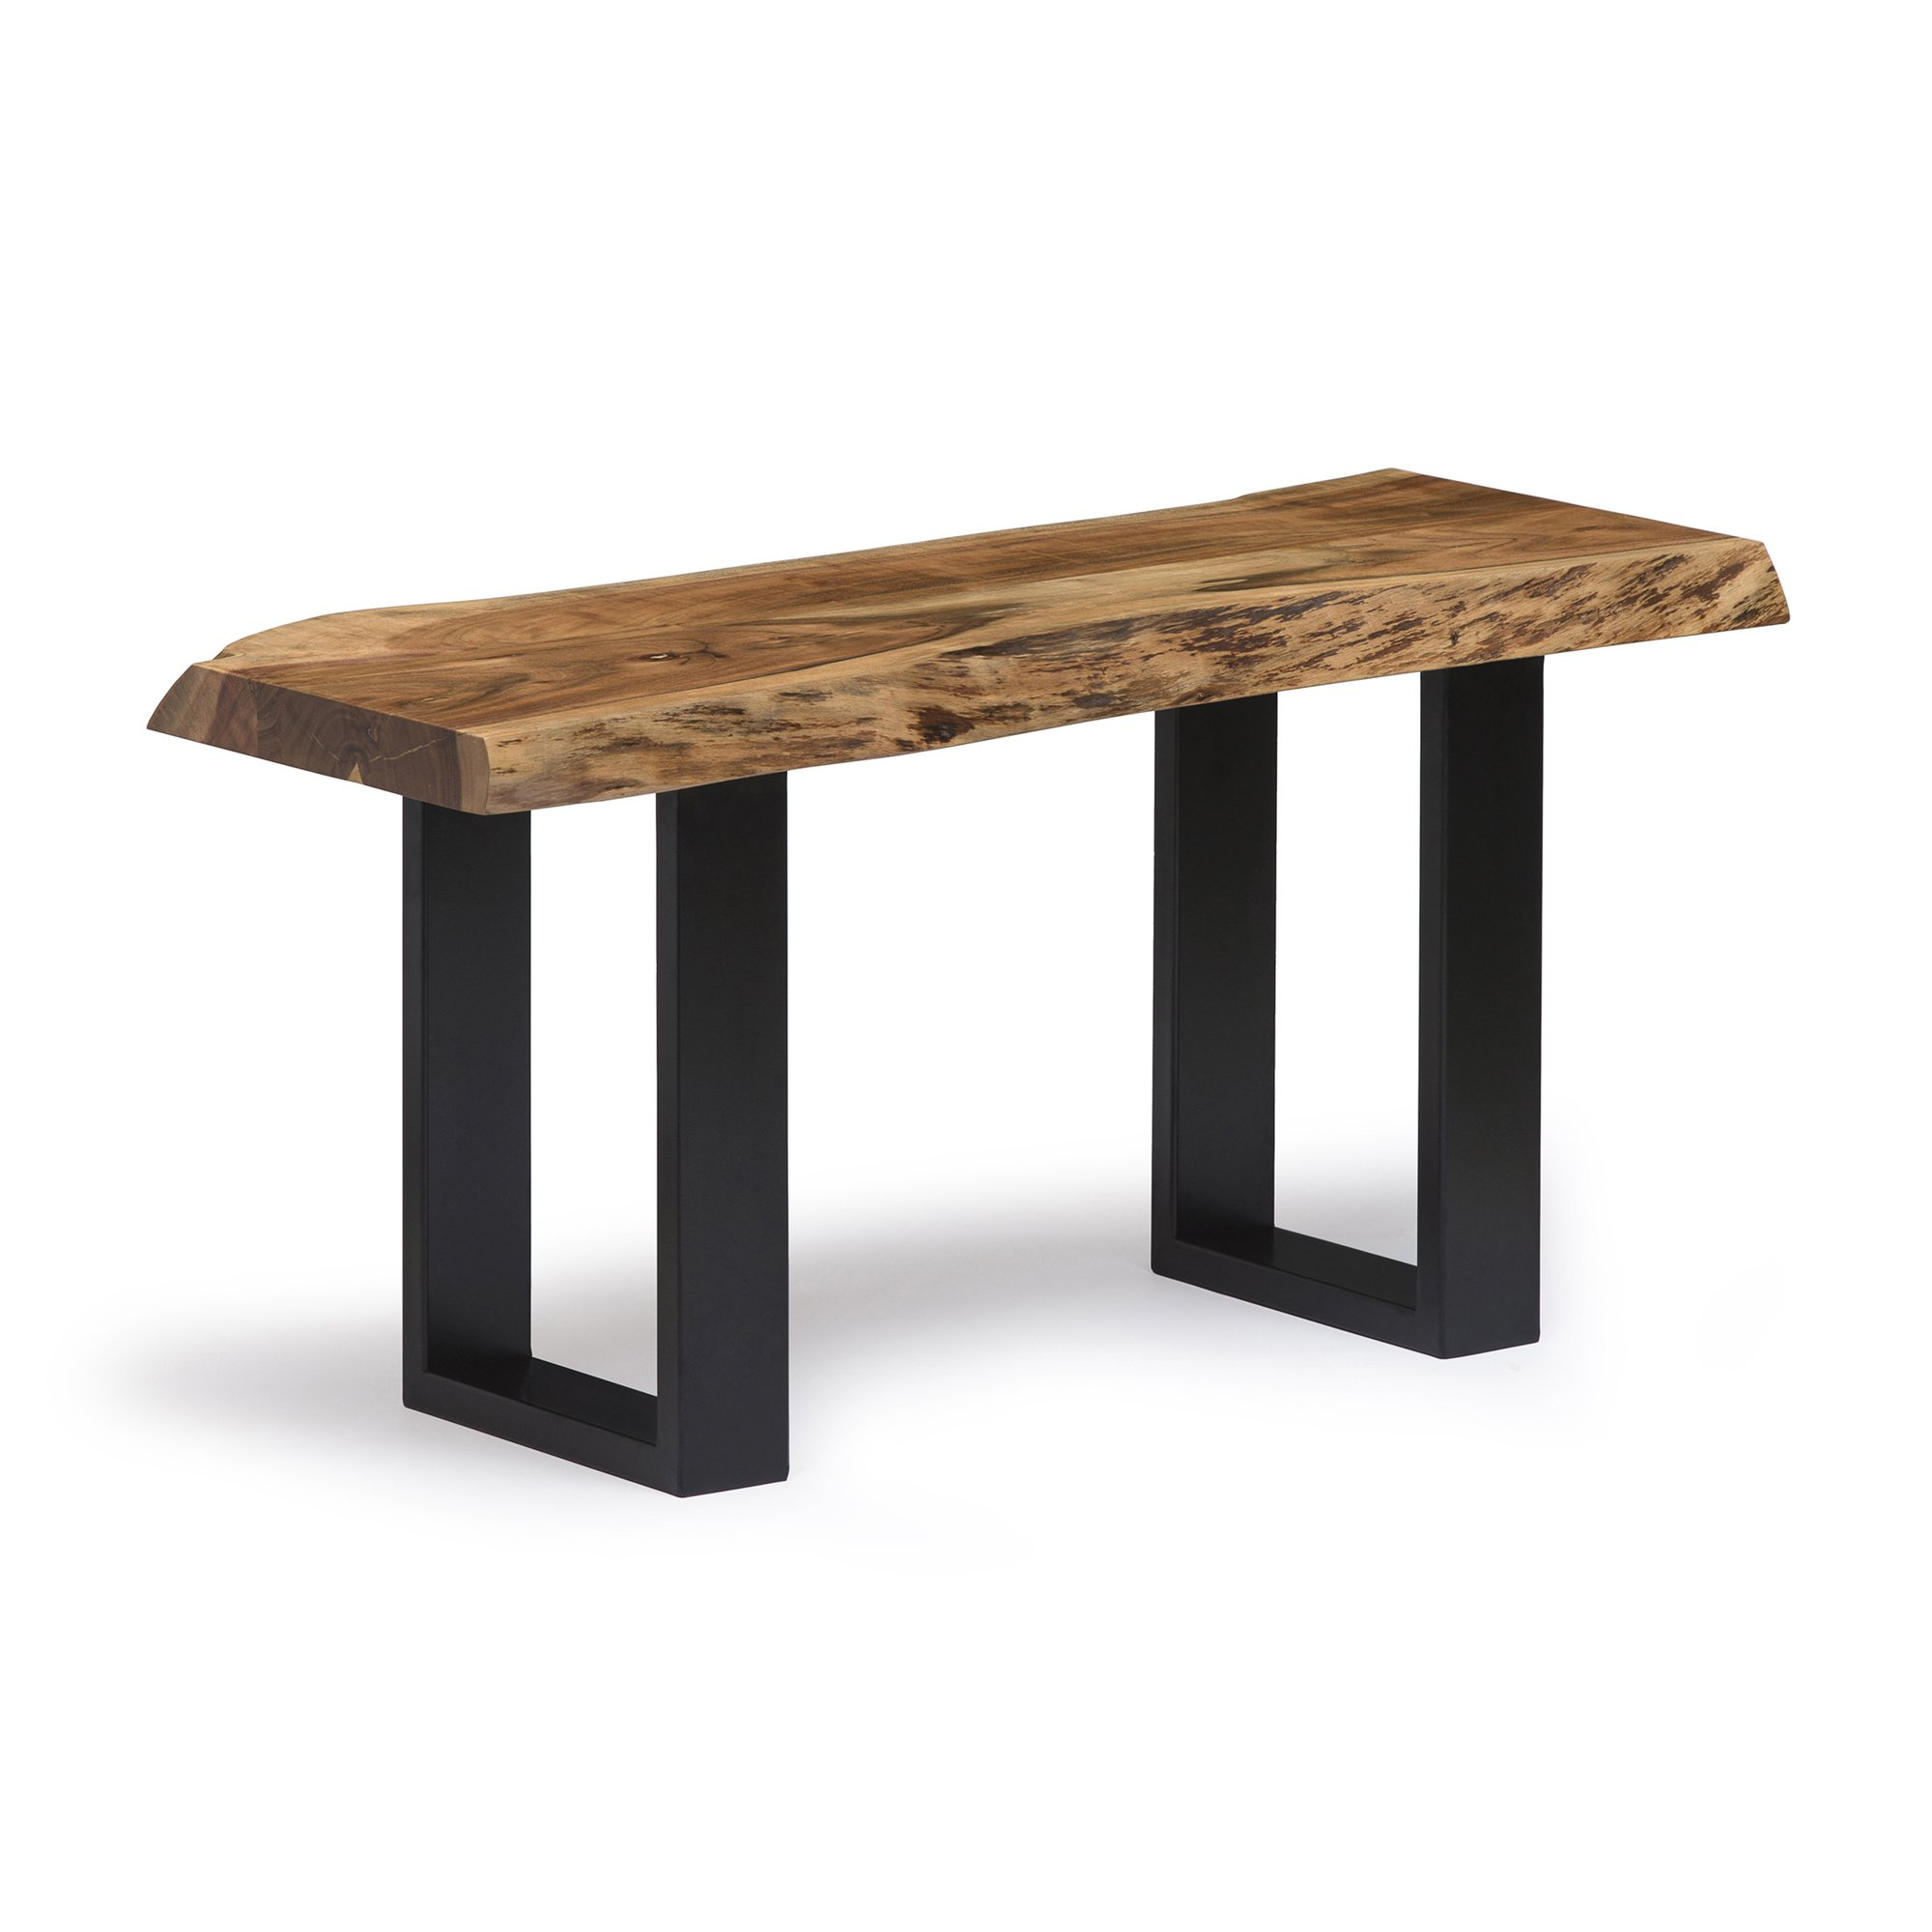 Alpine Live Edge Solid Wood 36'' Bench with Metal Legs, Natural by Alaterre